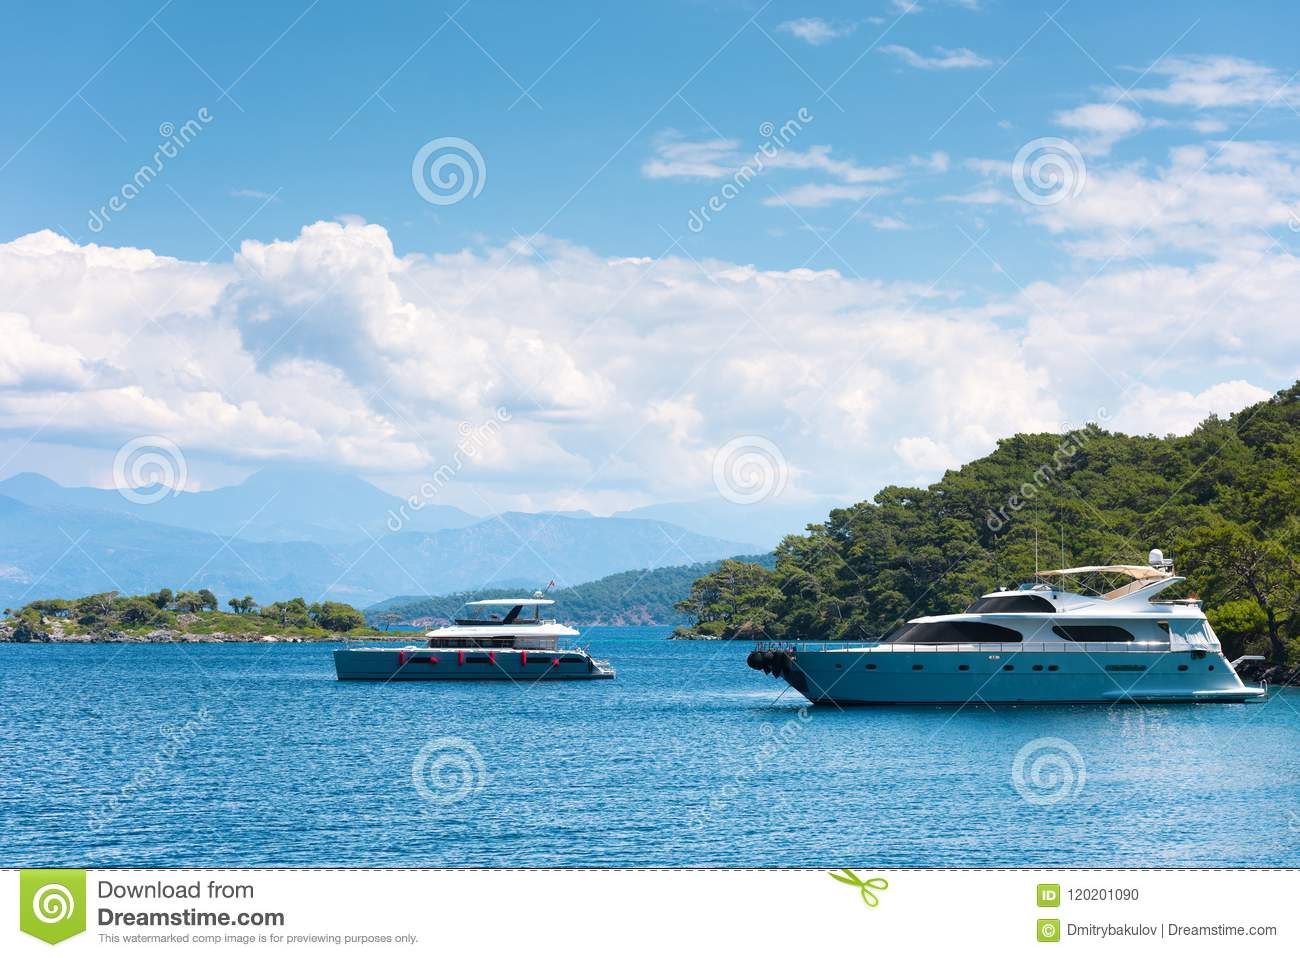 Two Modern Yachts In A Picturesque Sea Bay  The Island And